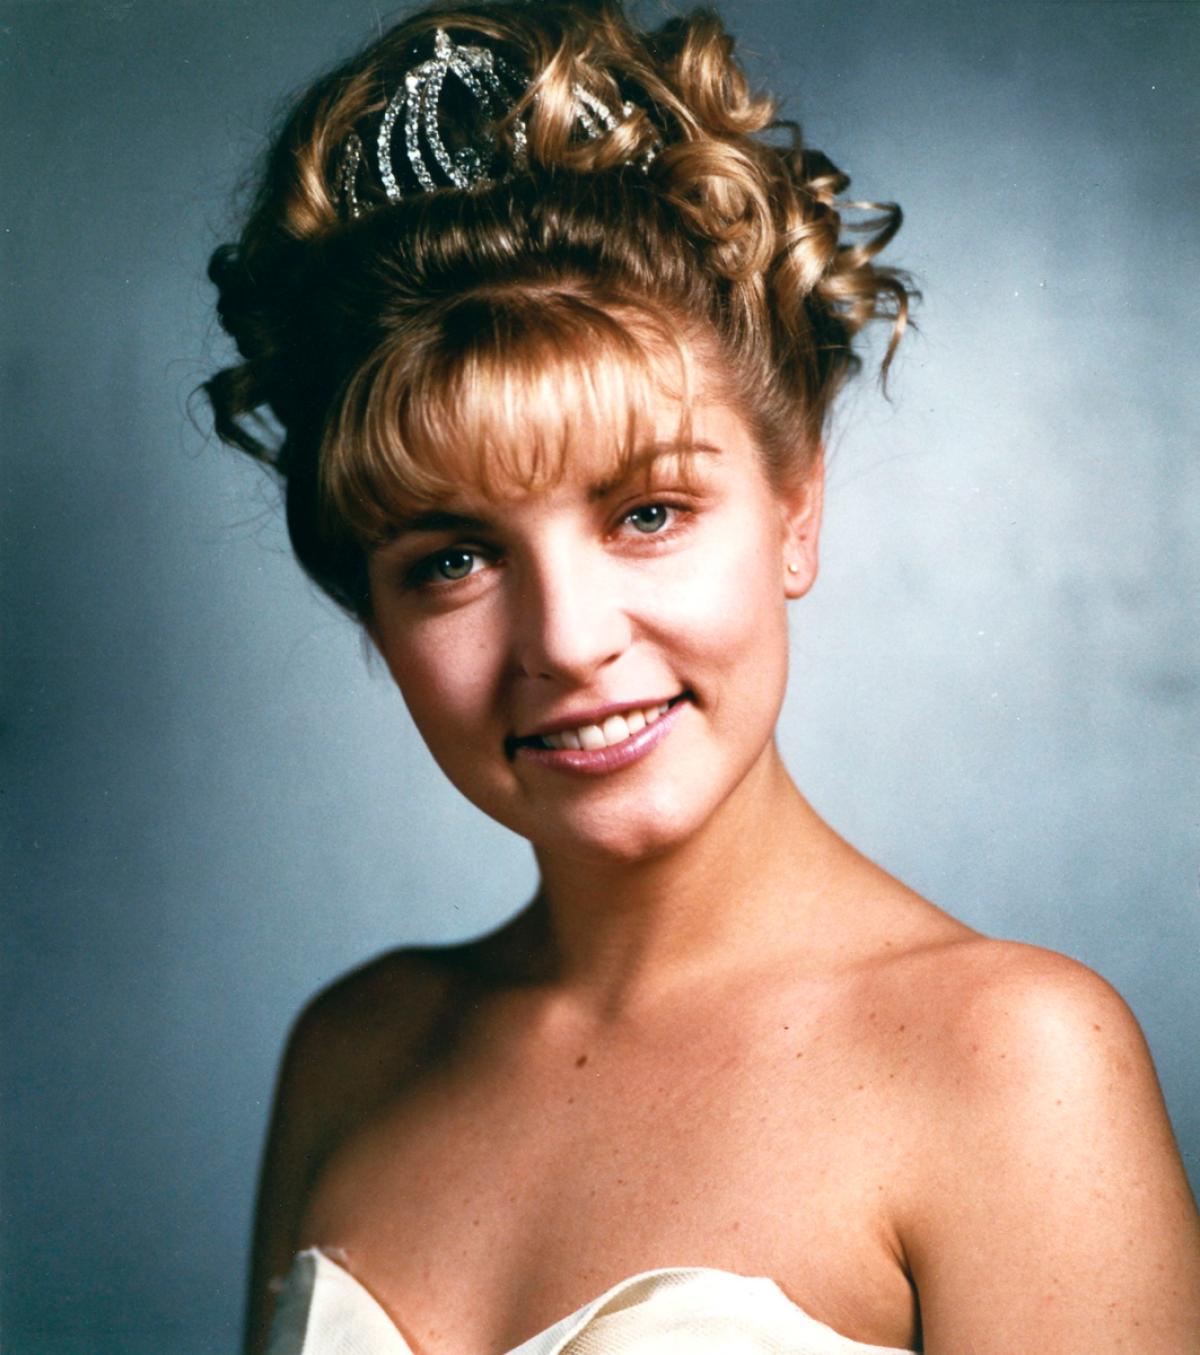 IMAGE(http://img3.wikia.nocookie.net/__cb20111030035926/twinpeaks/images/e/ef/Laura_Palmer,_the_Queen_Of_Hearts.jpg)